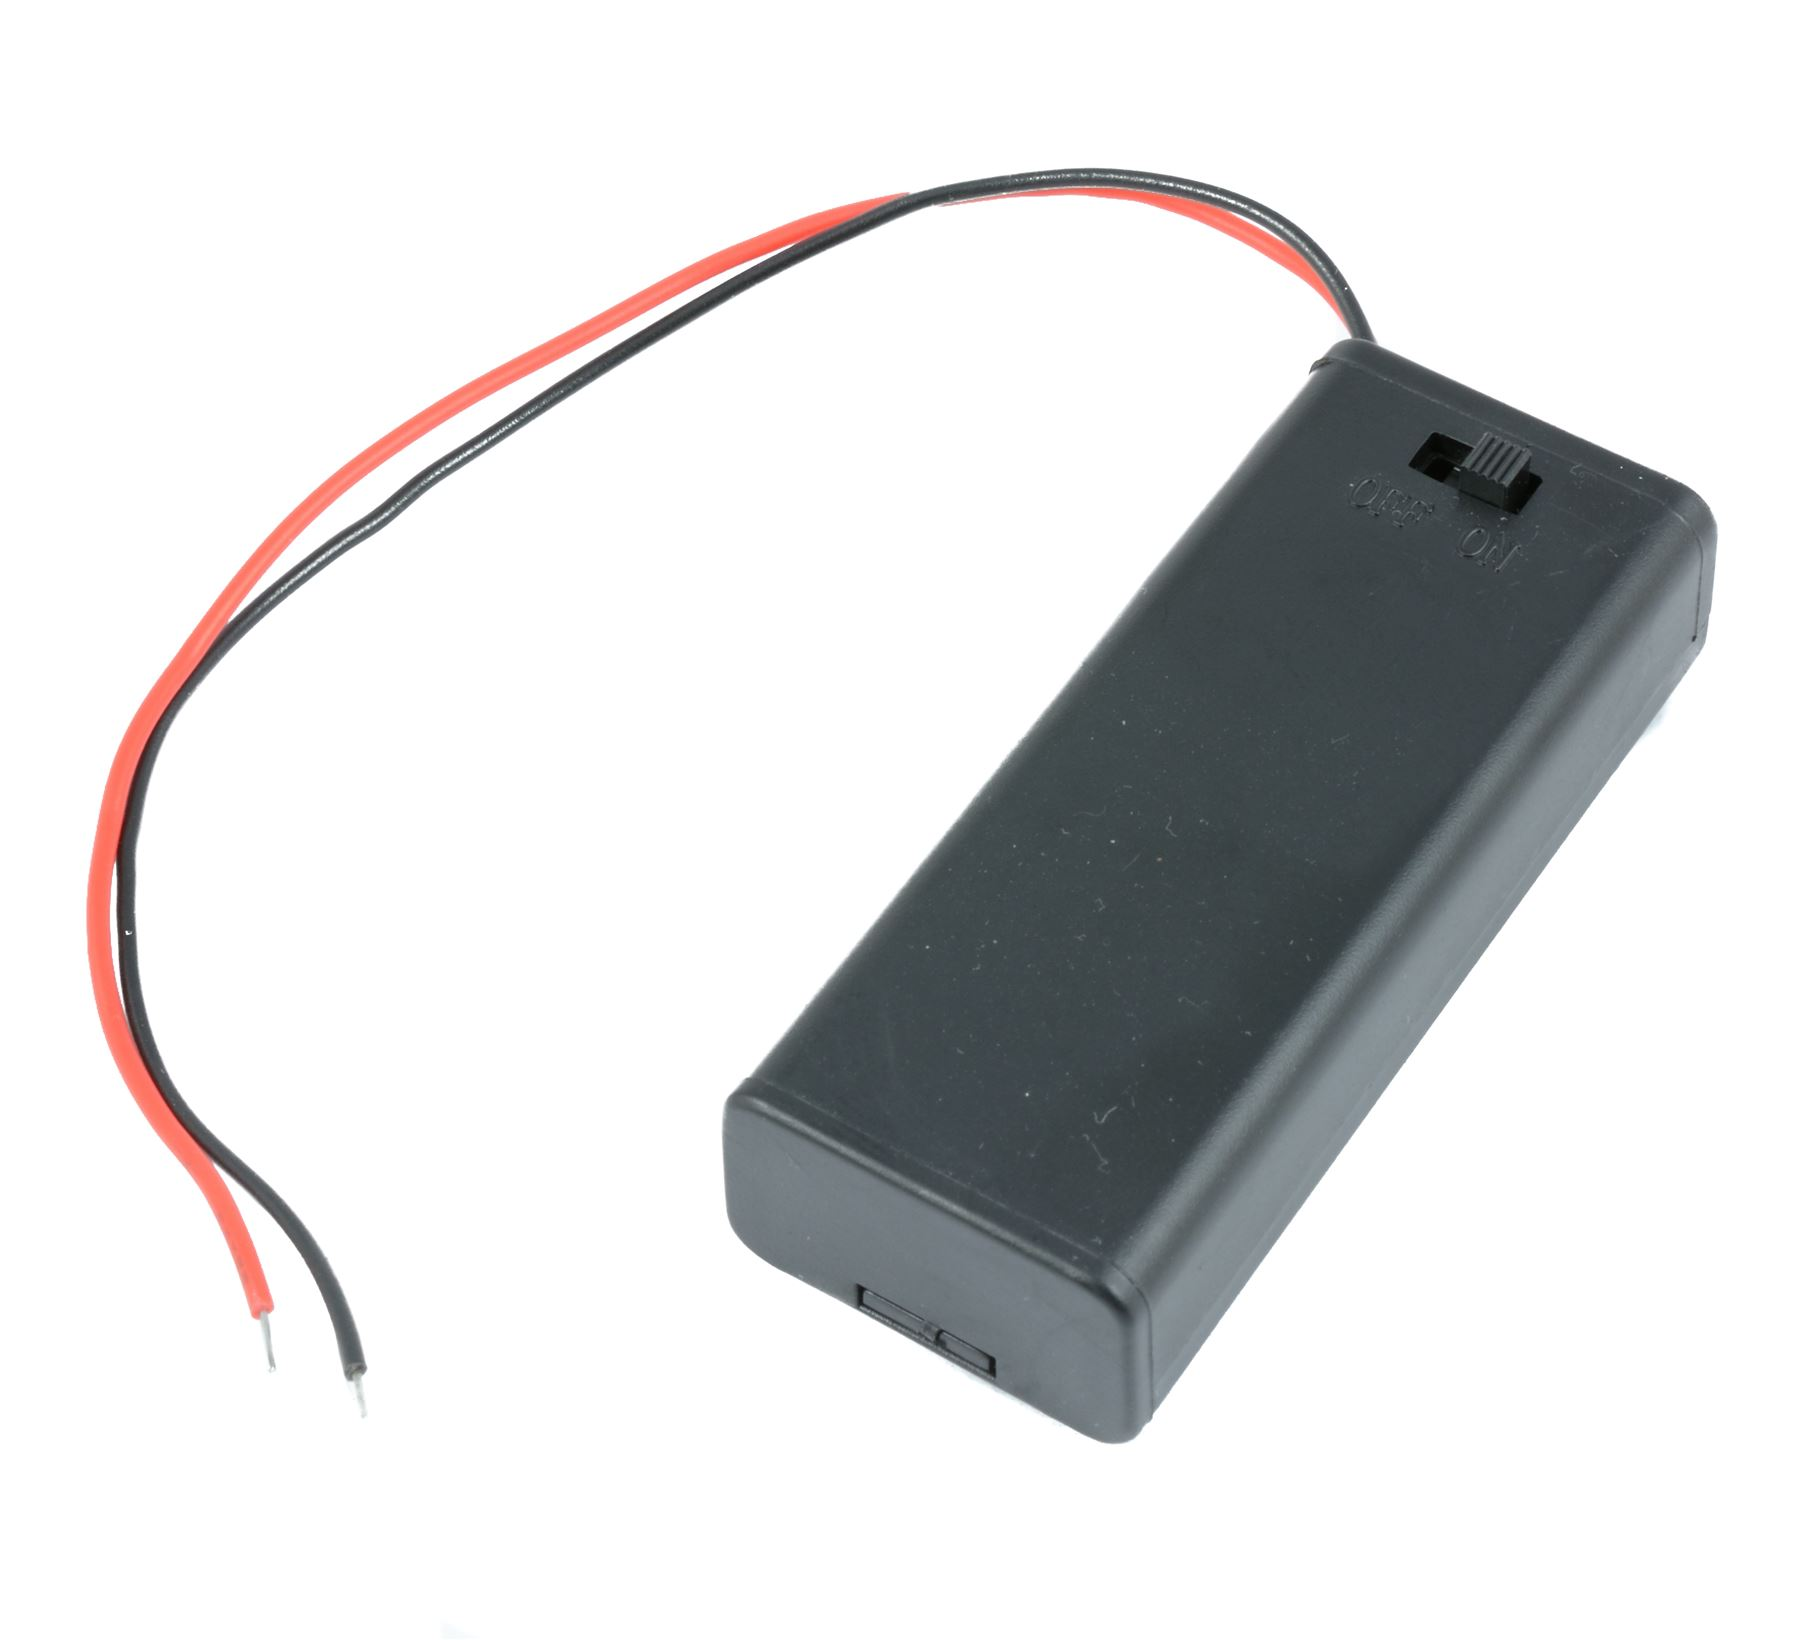 4 x 1.5V Cell AAA Battery Holder Case Enclosed Box Plastic With Switch 15cm Wire